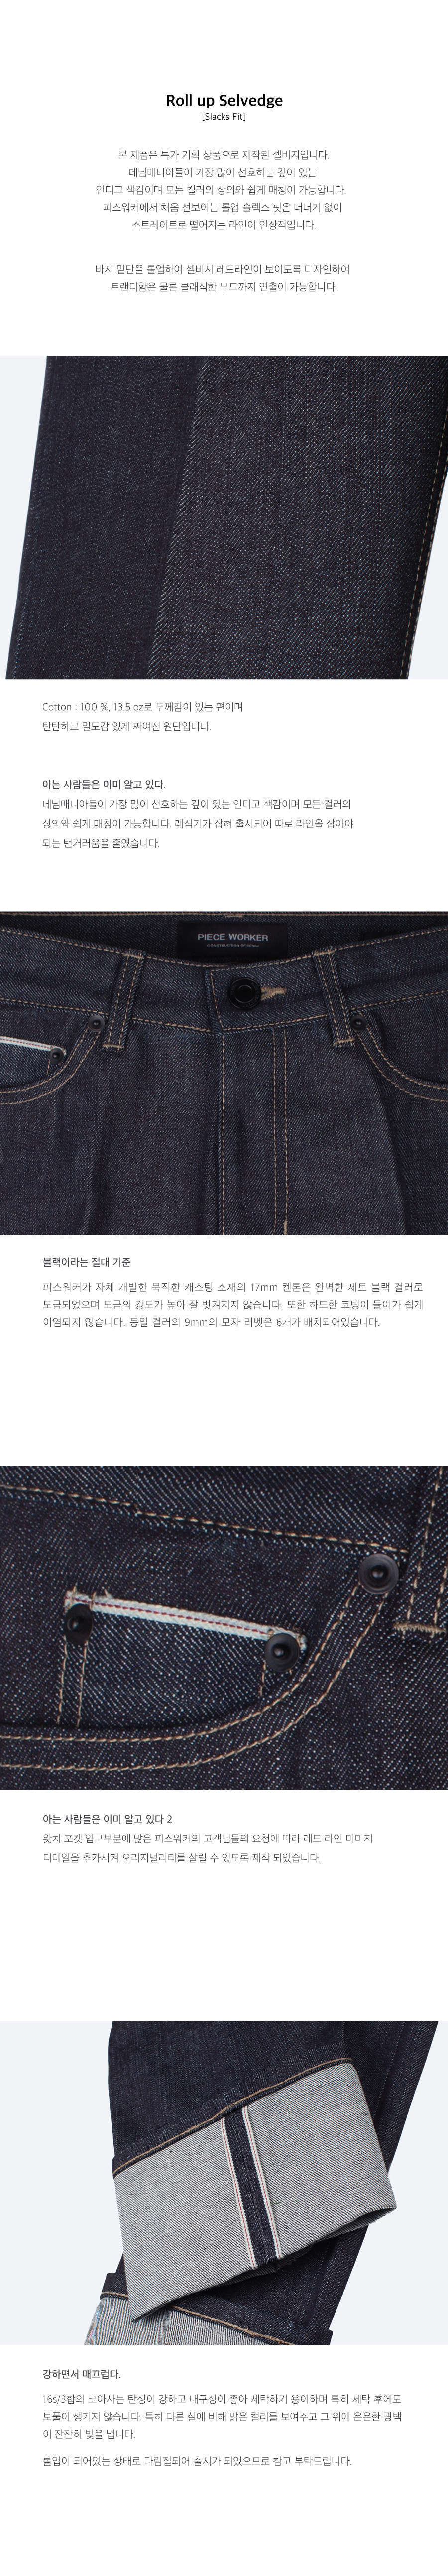 Roll-up-Selvedge.jpg